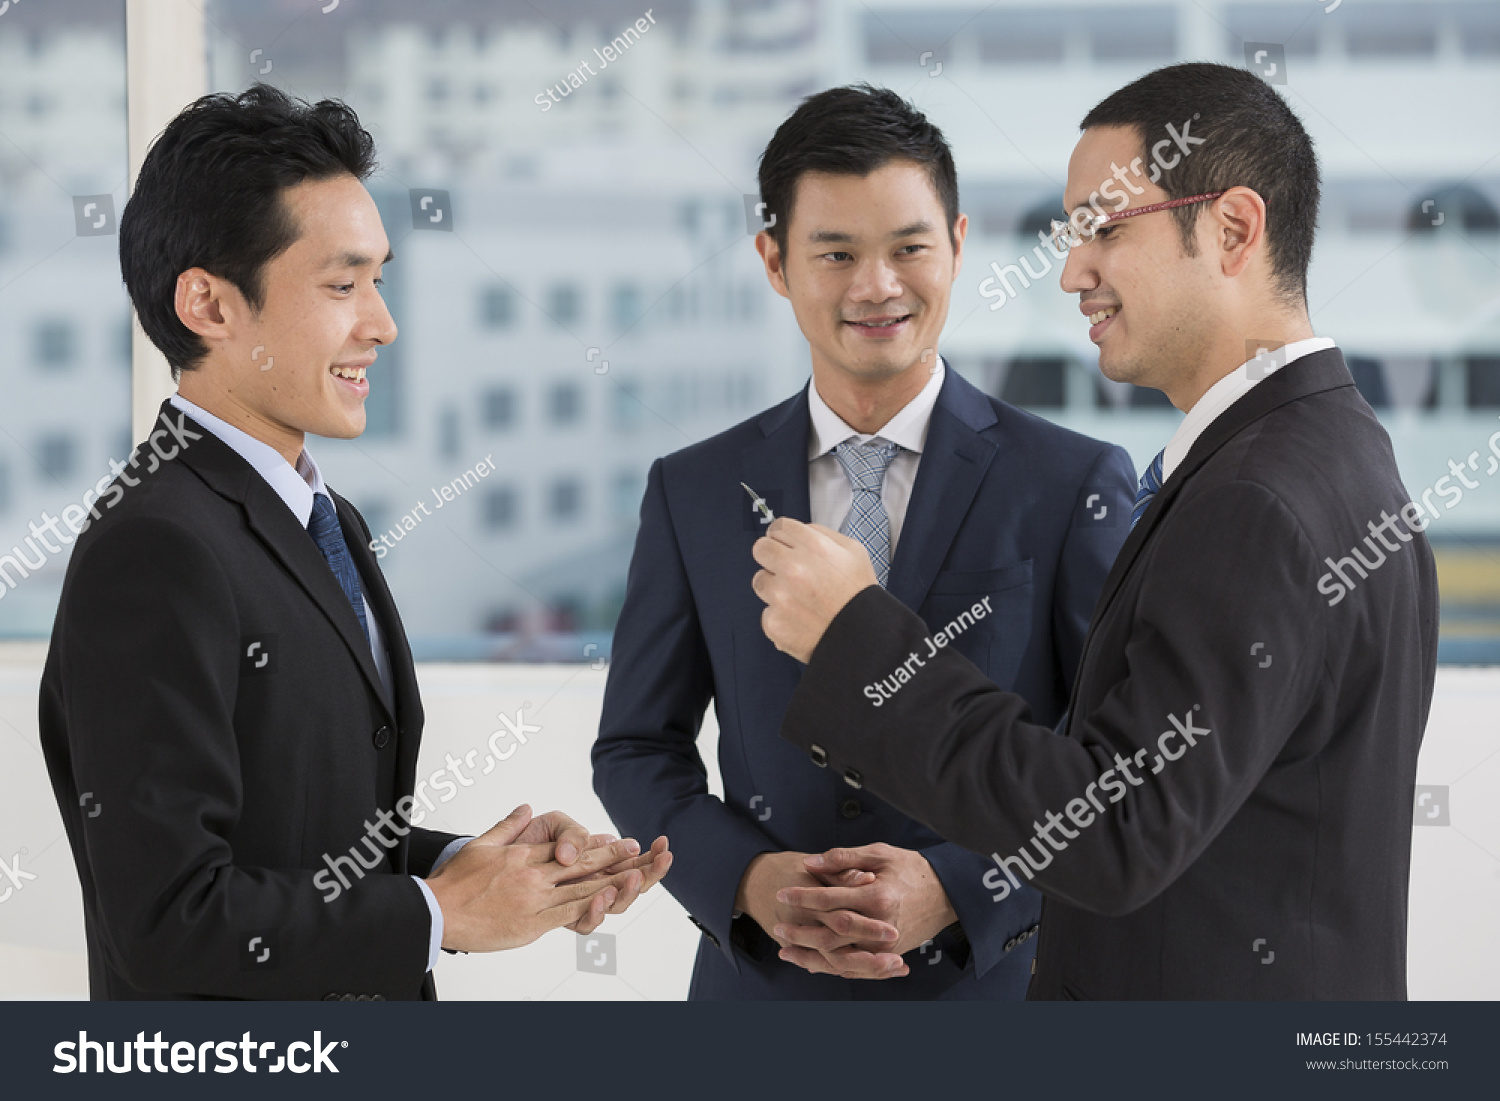 Two Business Men Exchanging Business Cards Stock Photo 155442374 ...